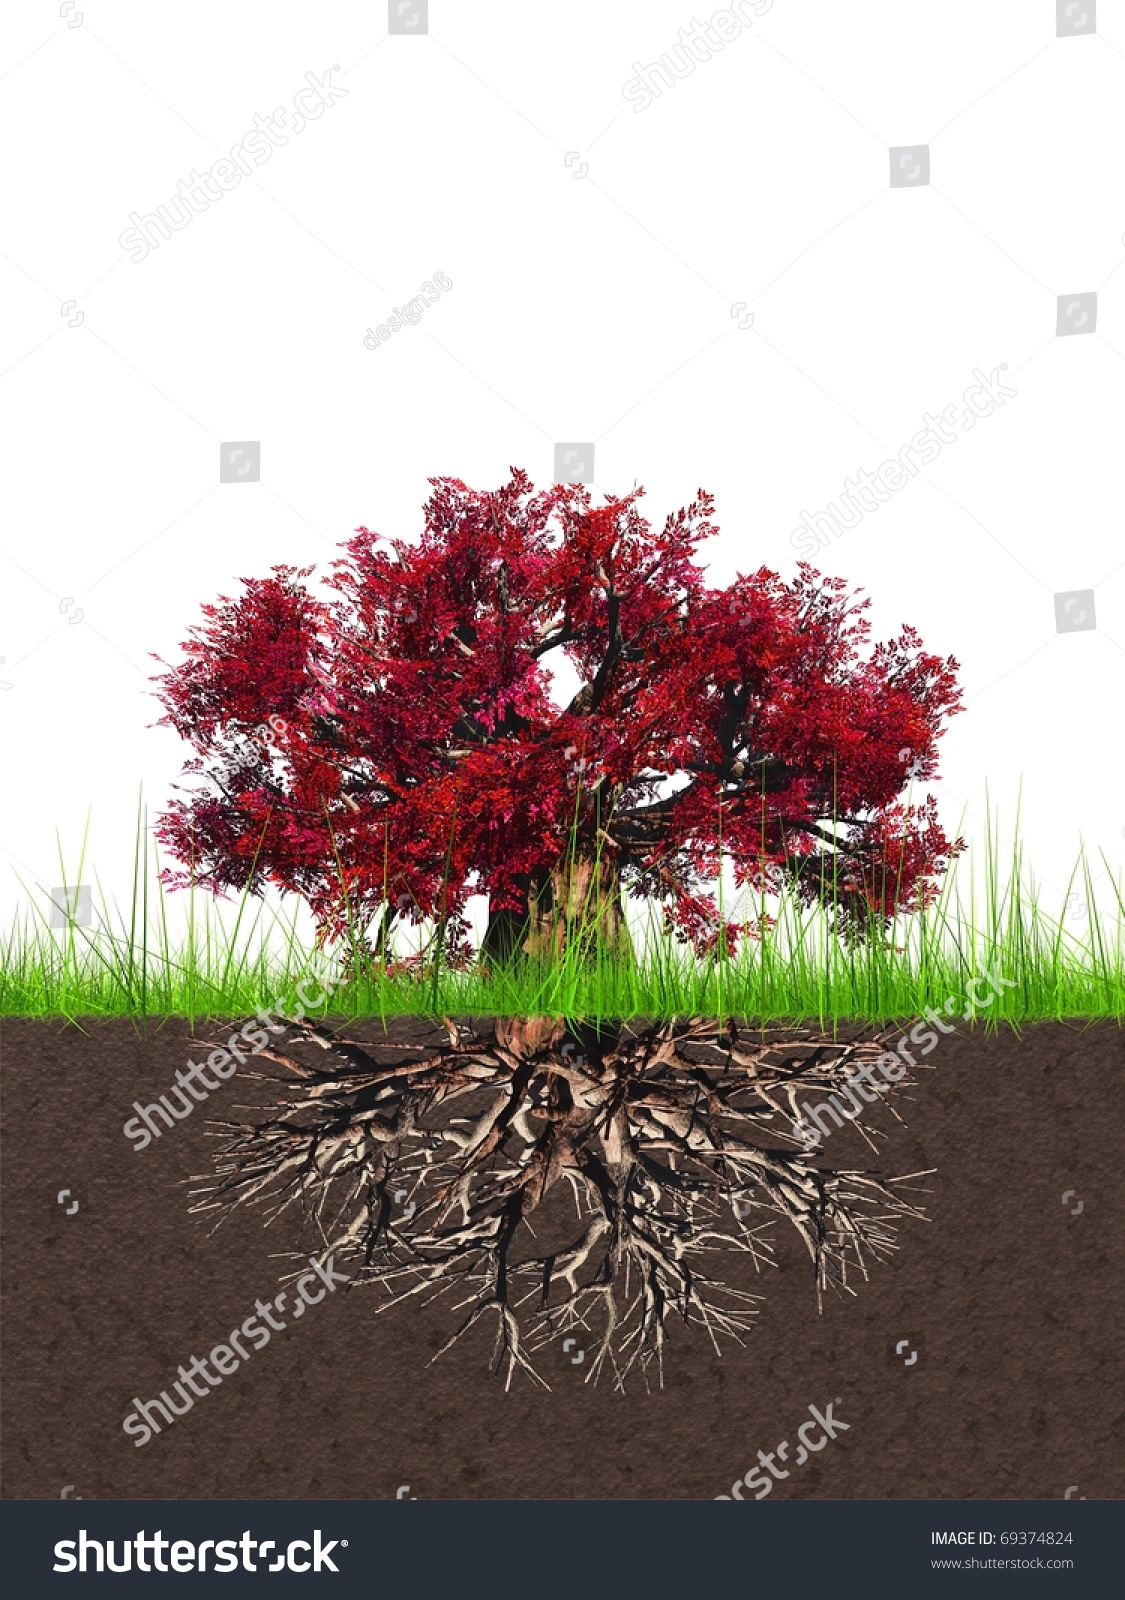 Deep Roots In Native Youth: High Resolution Conceptual Tree With Deep Roots Stock